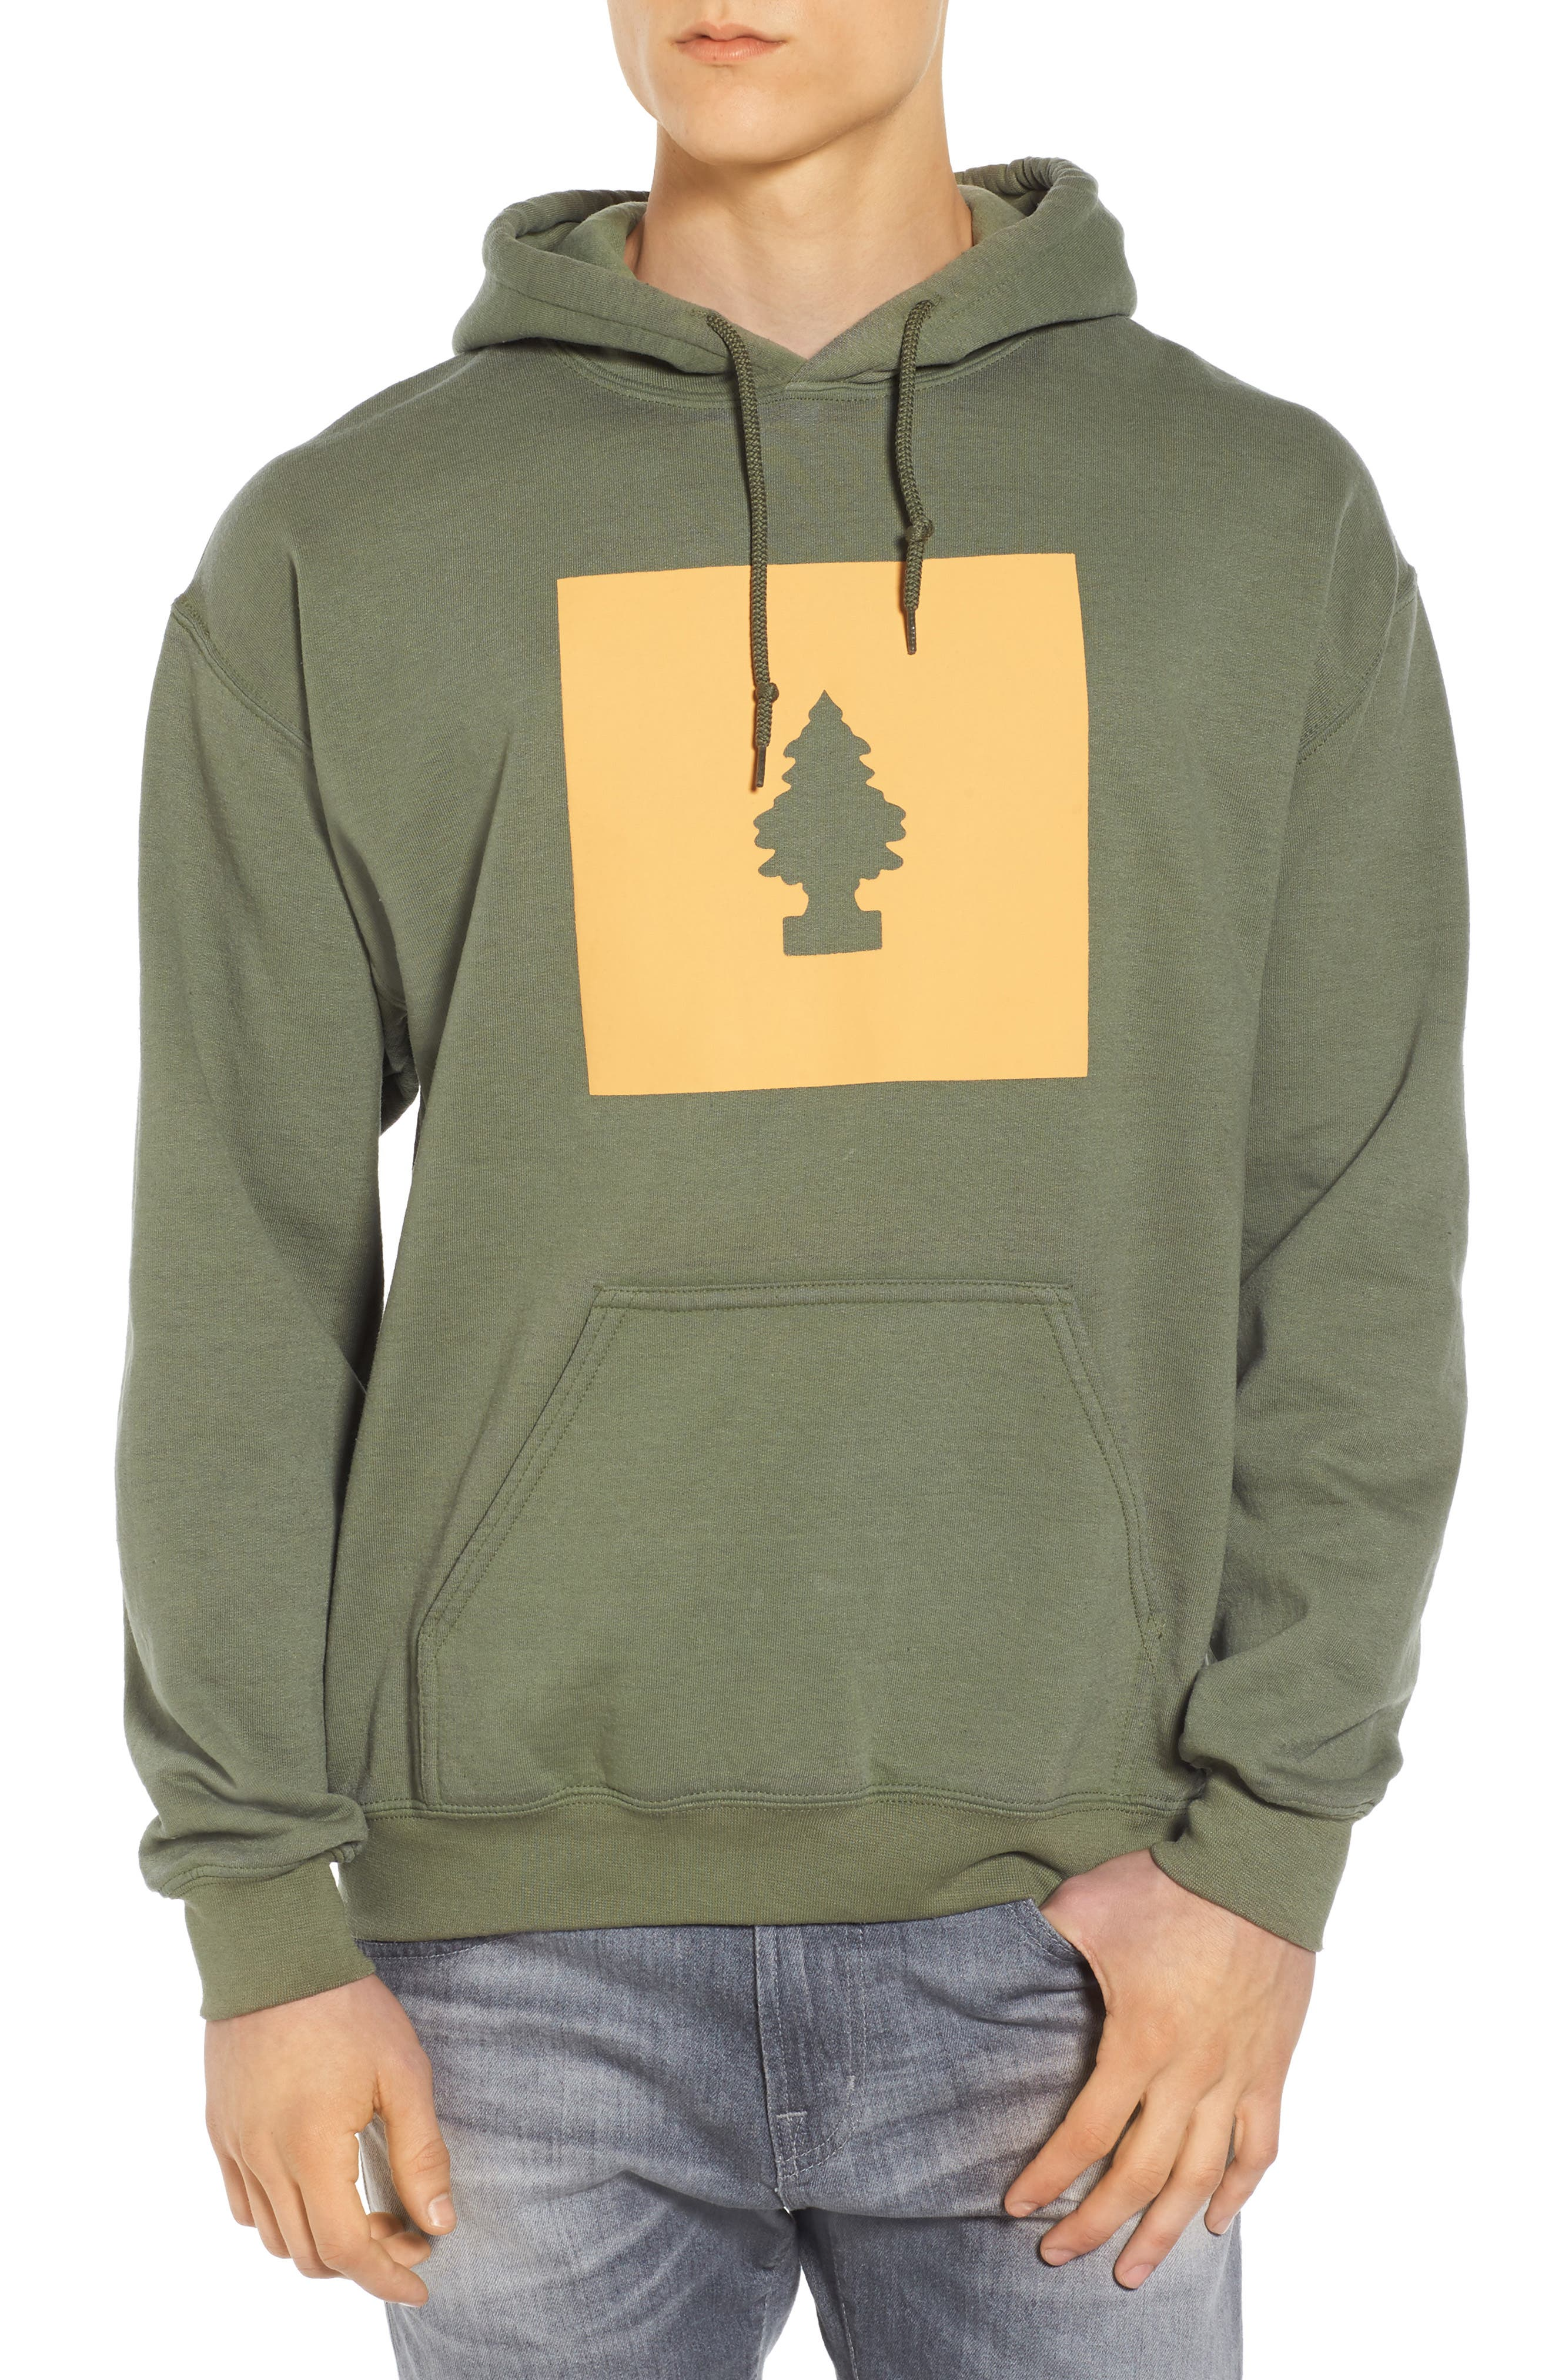 Happy Little Tree Hoodie,                             Main thumbnail 1, color,                             Green